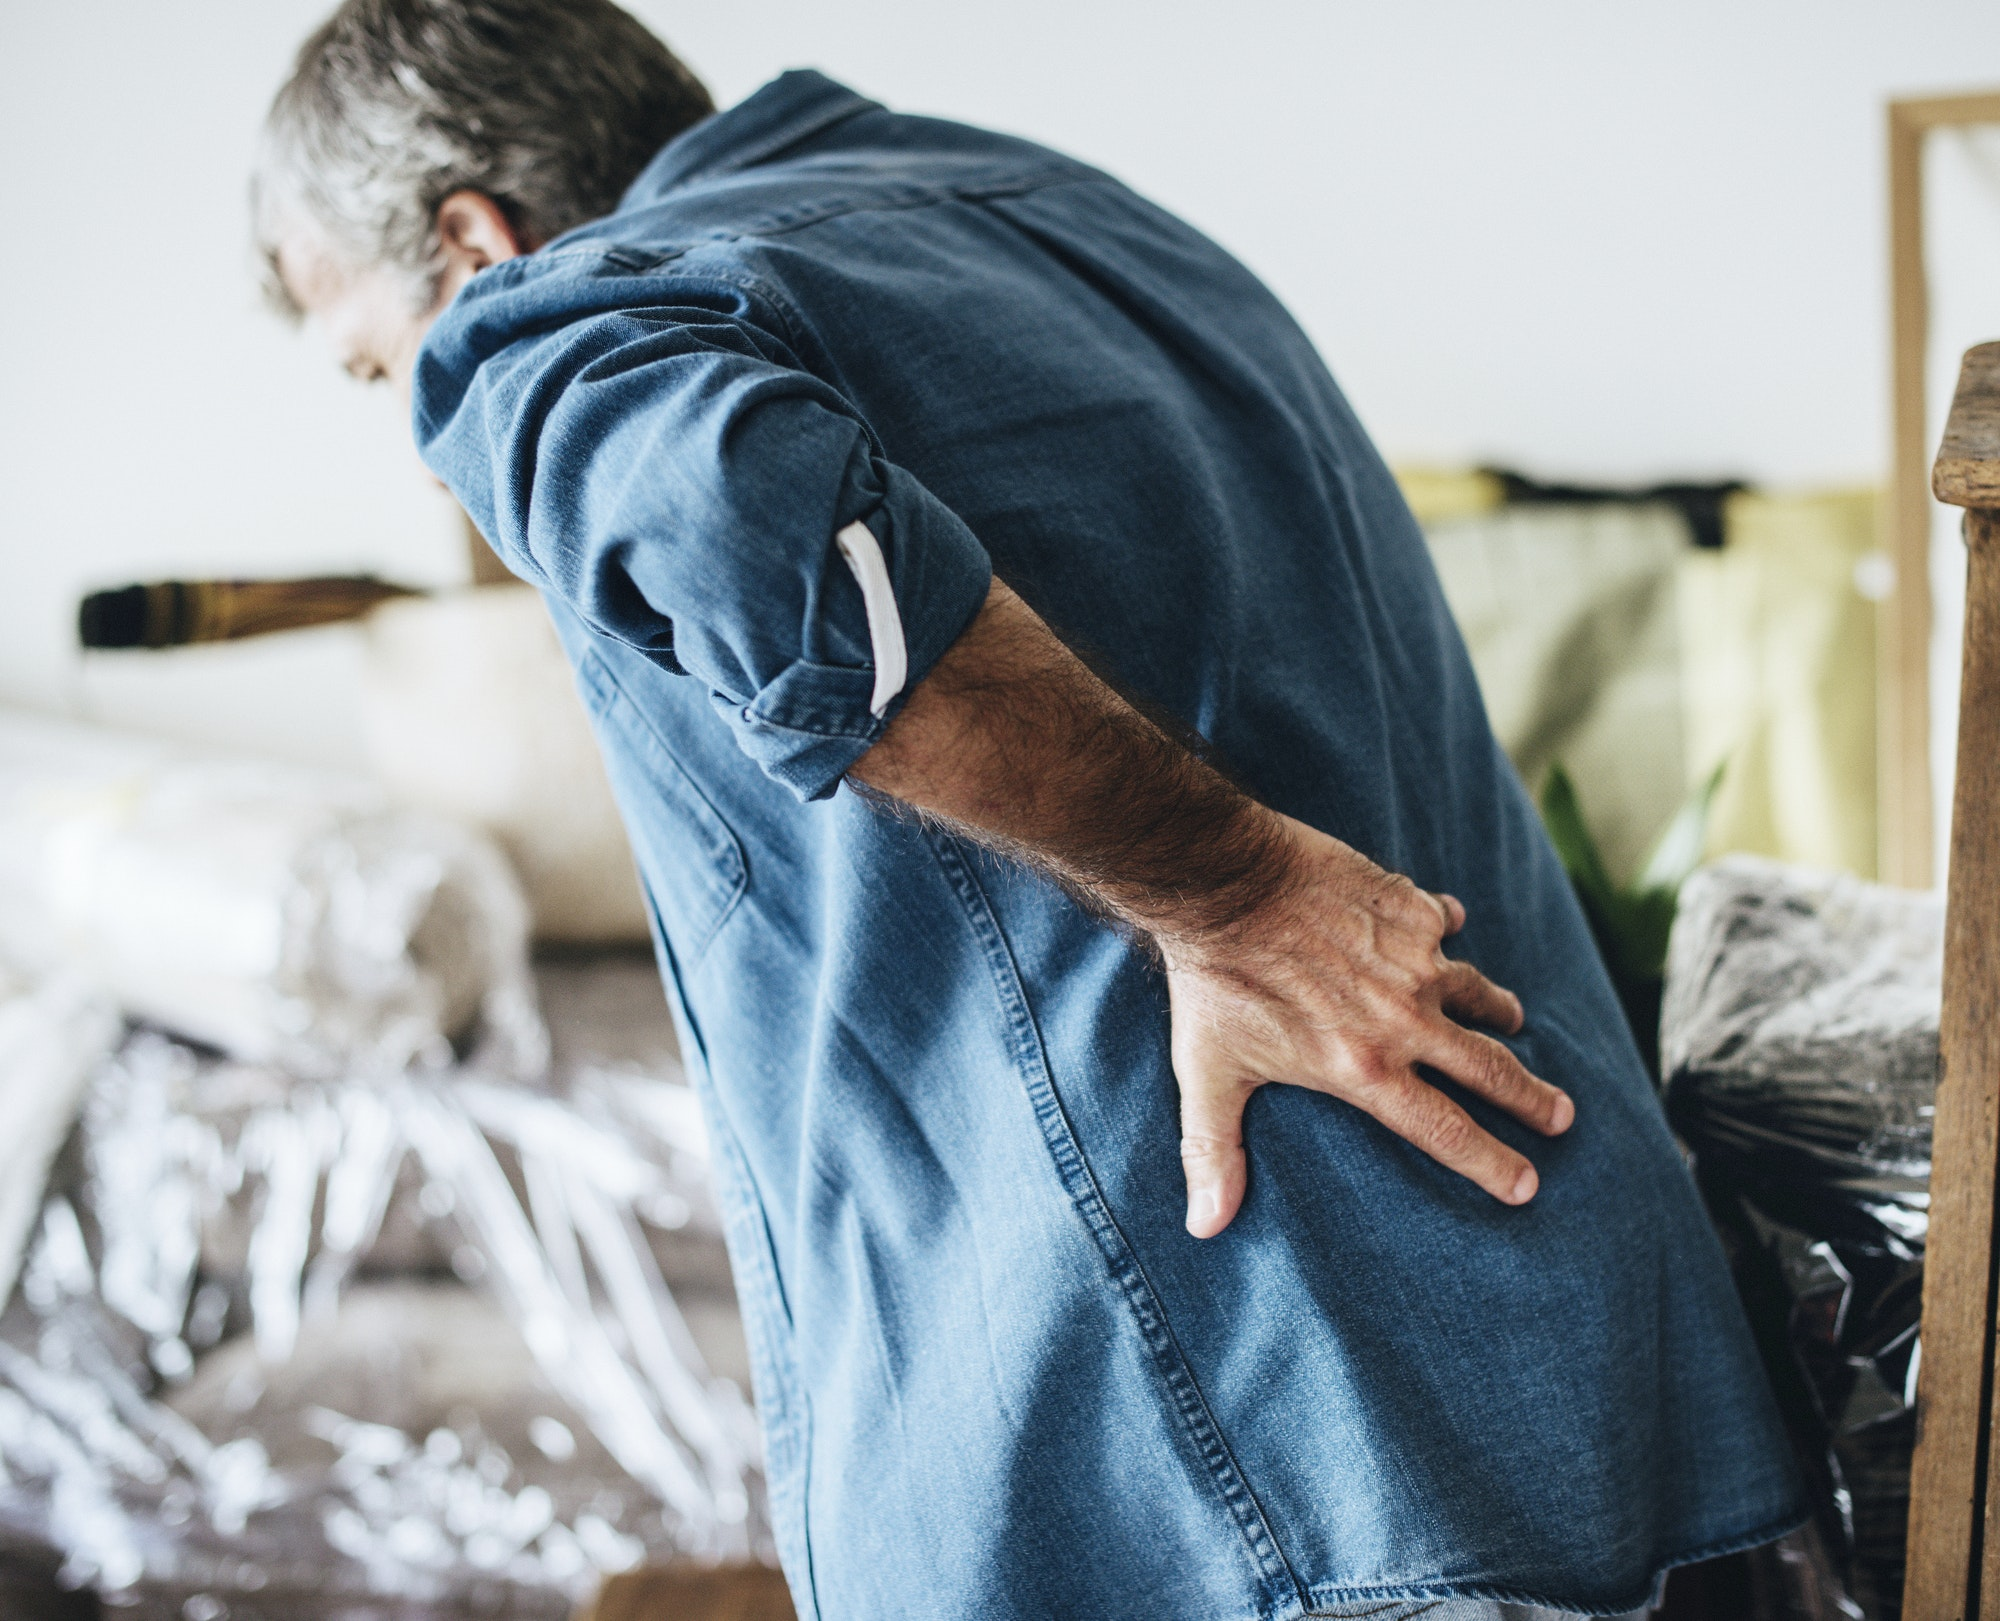 Step by Step Process for Relieving Chronic Pain